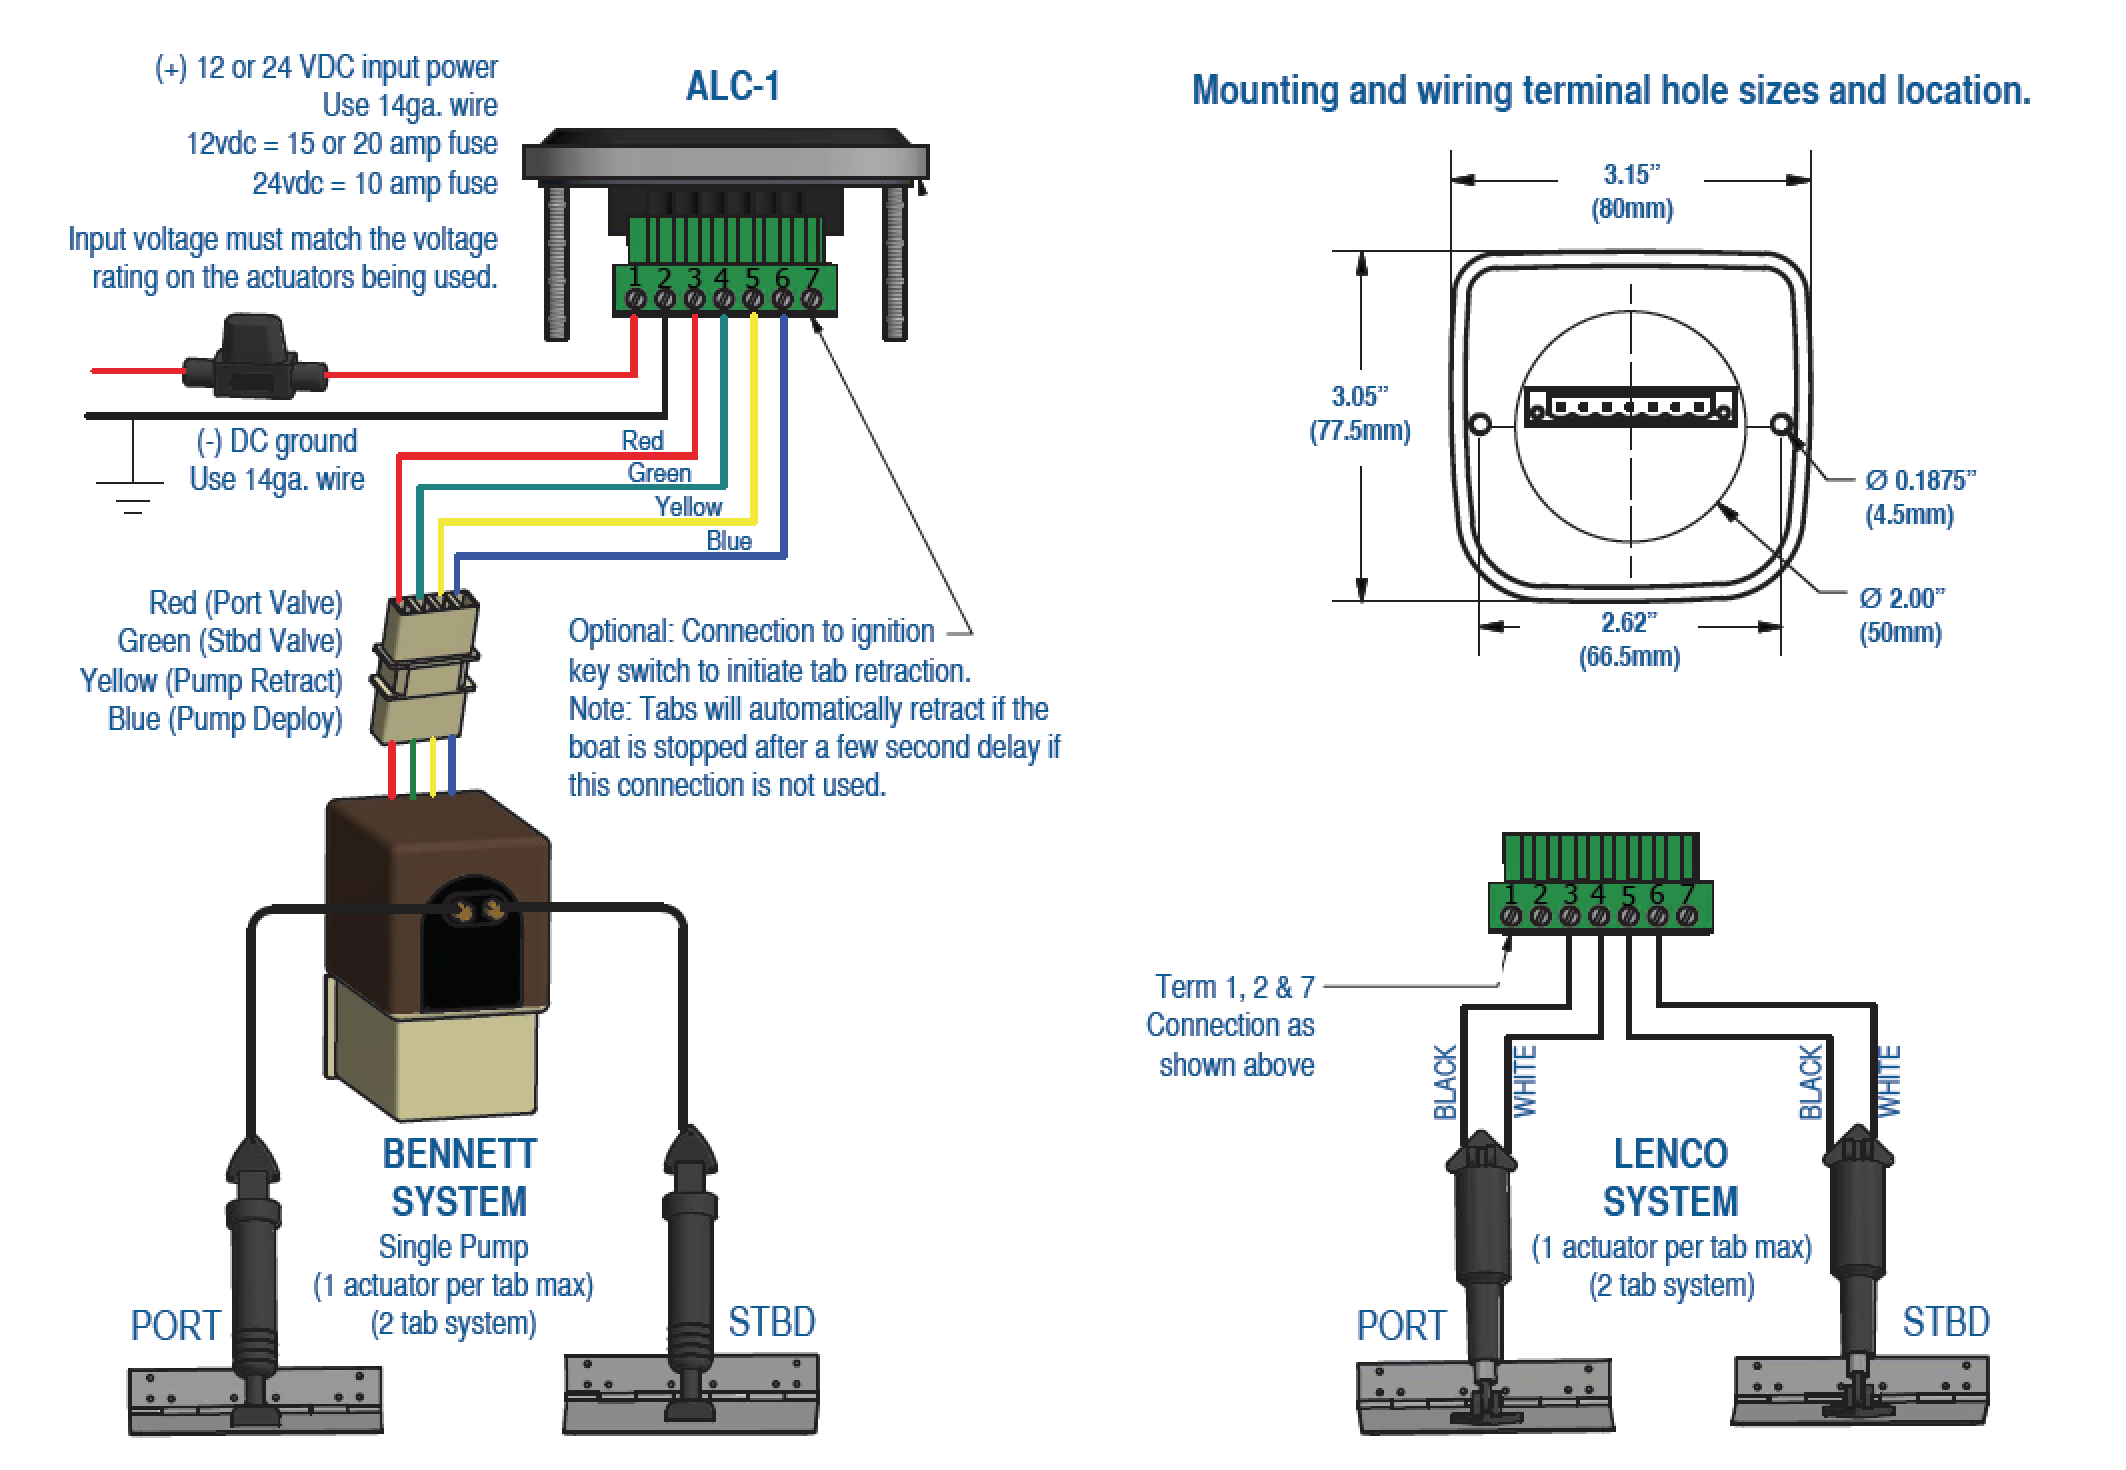 alc bennet lenco systems automatic level control for lenco and bennett products lenco trim tab switch wiring diagram at nearapp.co